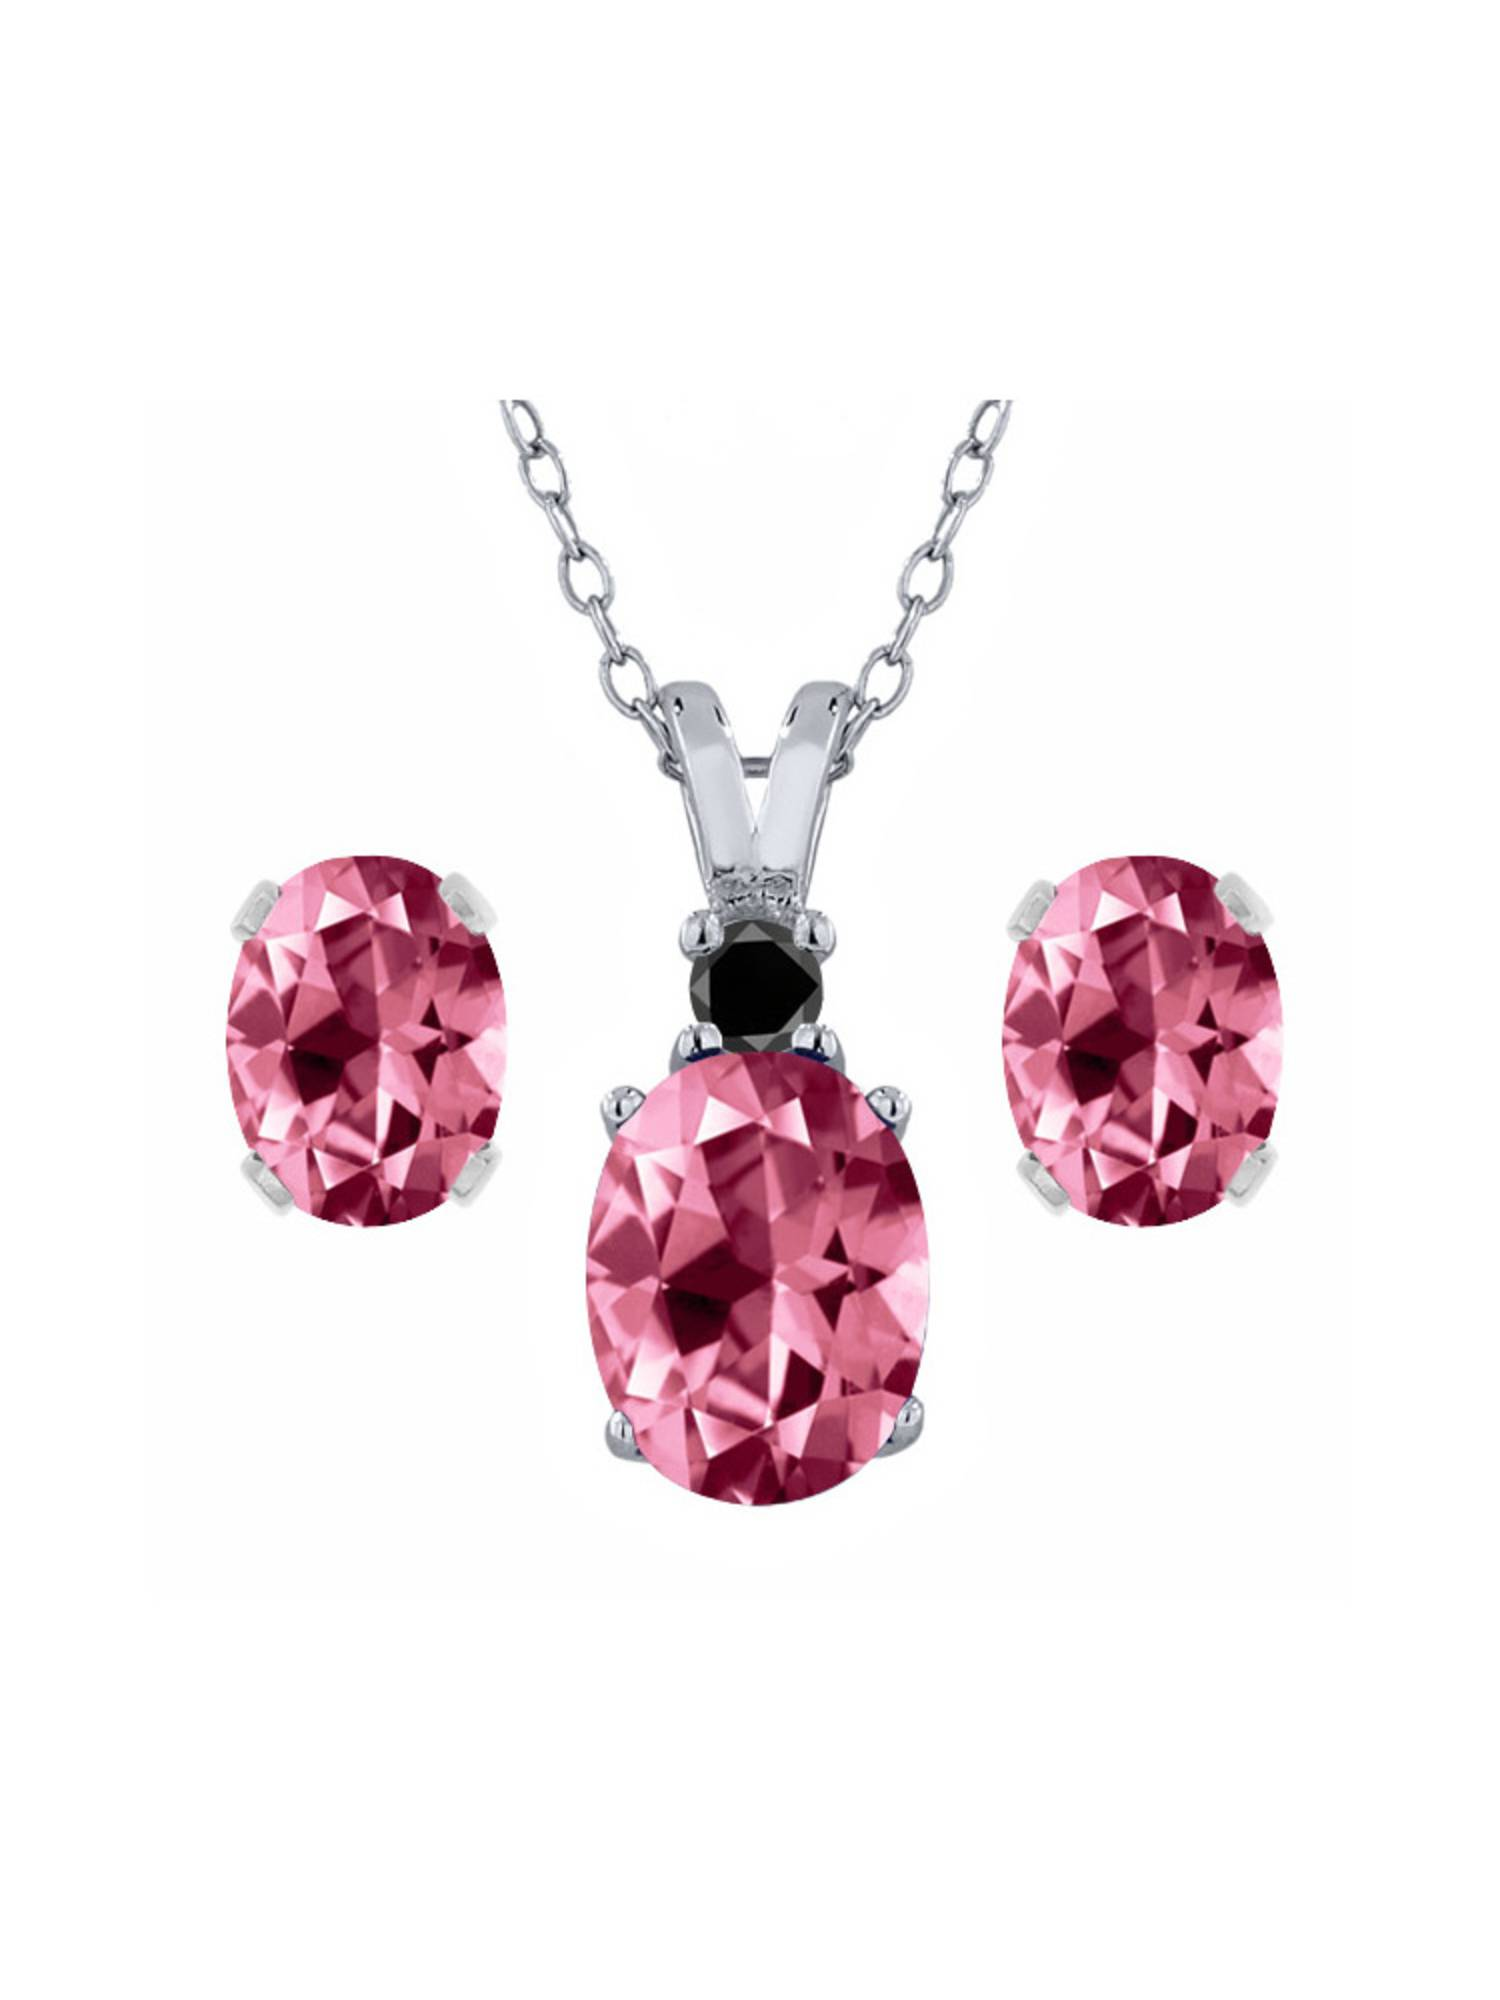 925 Sterling Silver Diamond Pendant Earrings Set with Pink Topaz from Swarvoski by